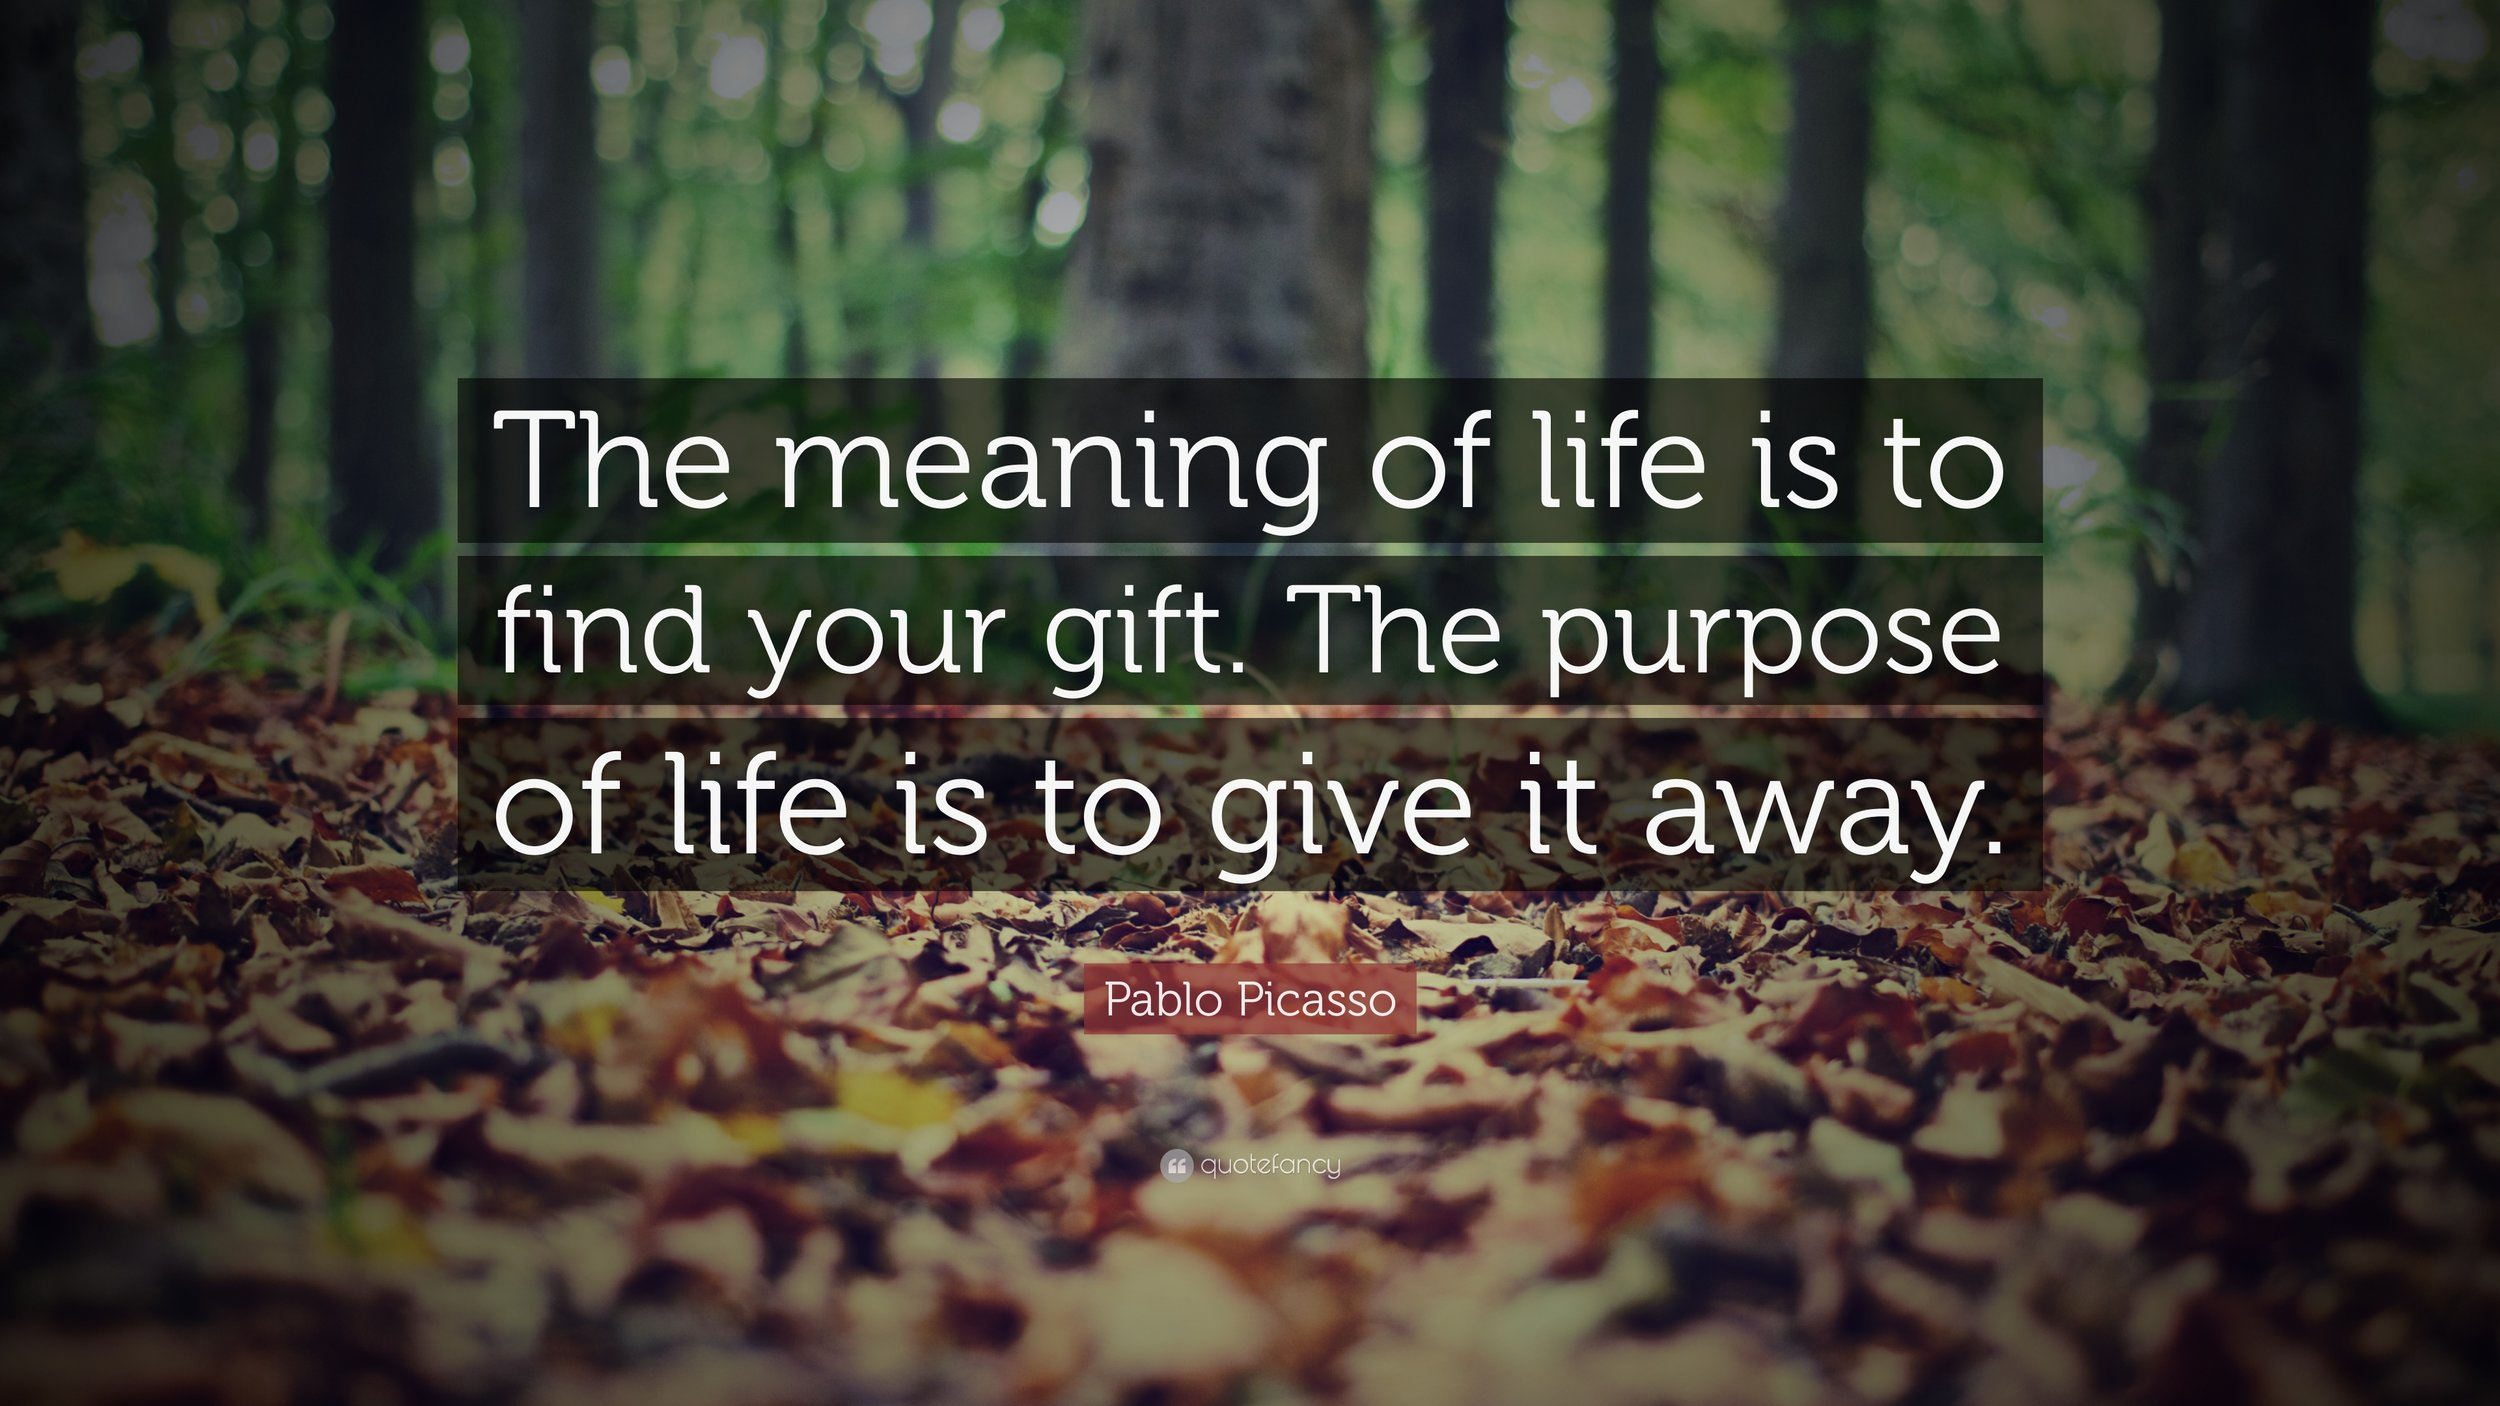 Pablo-Picasso-Quote-The-meaning-of-life-is-to-find-your-gift-The.jpg